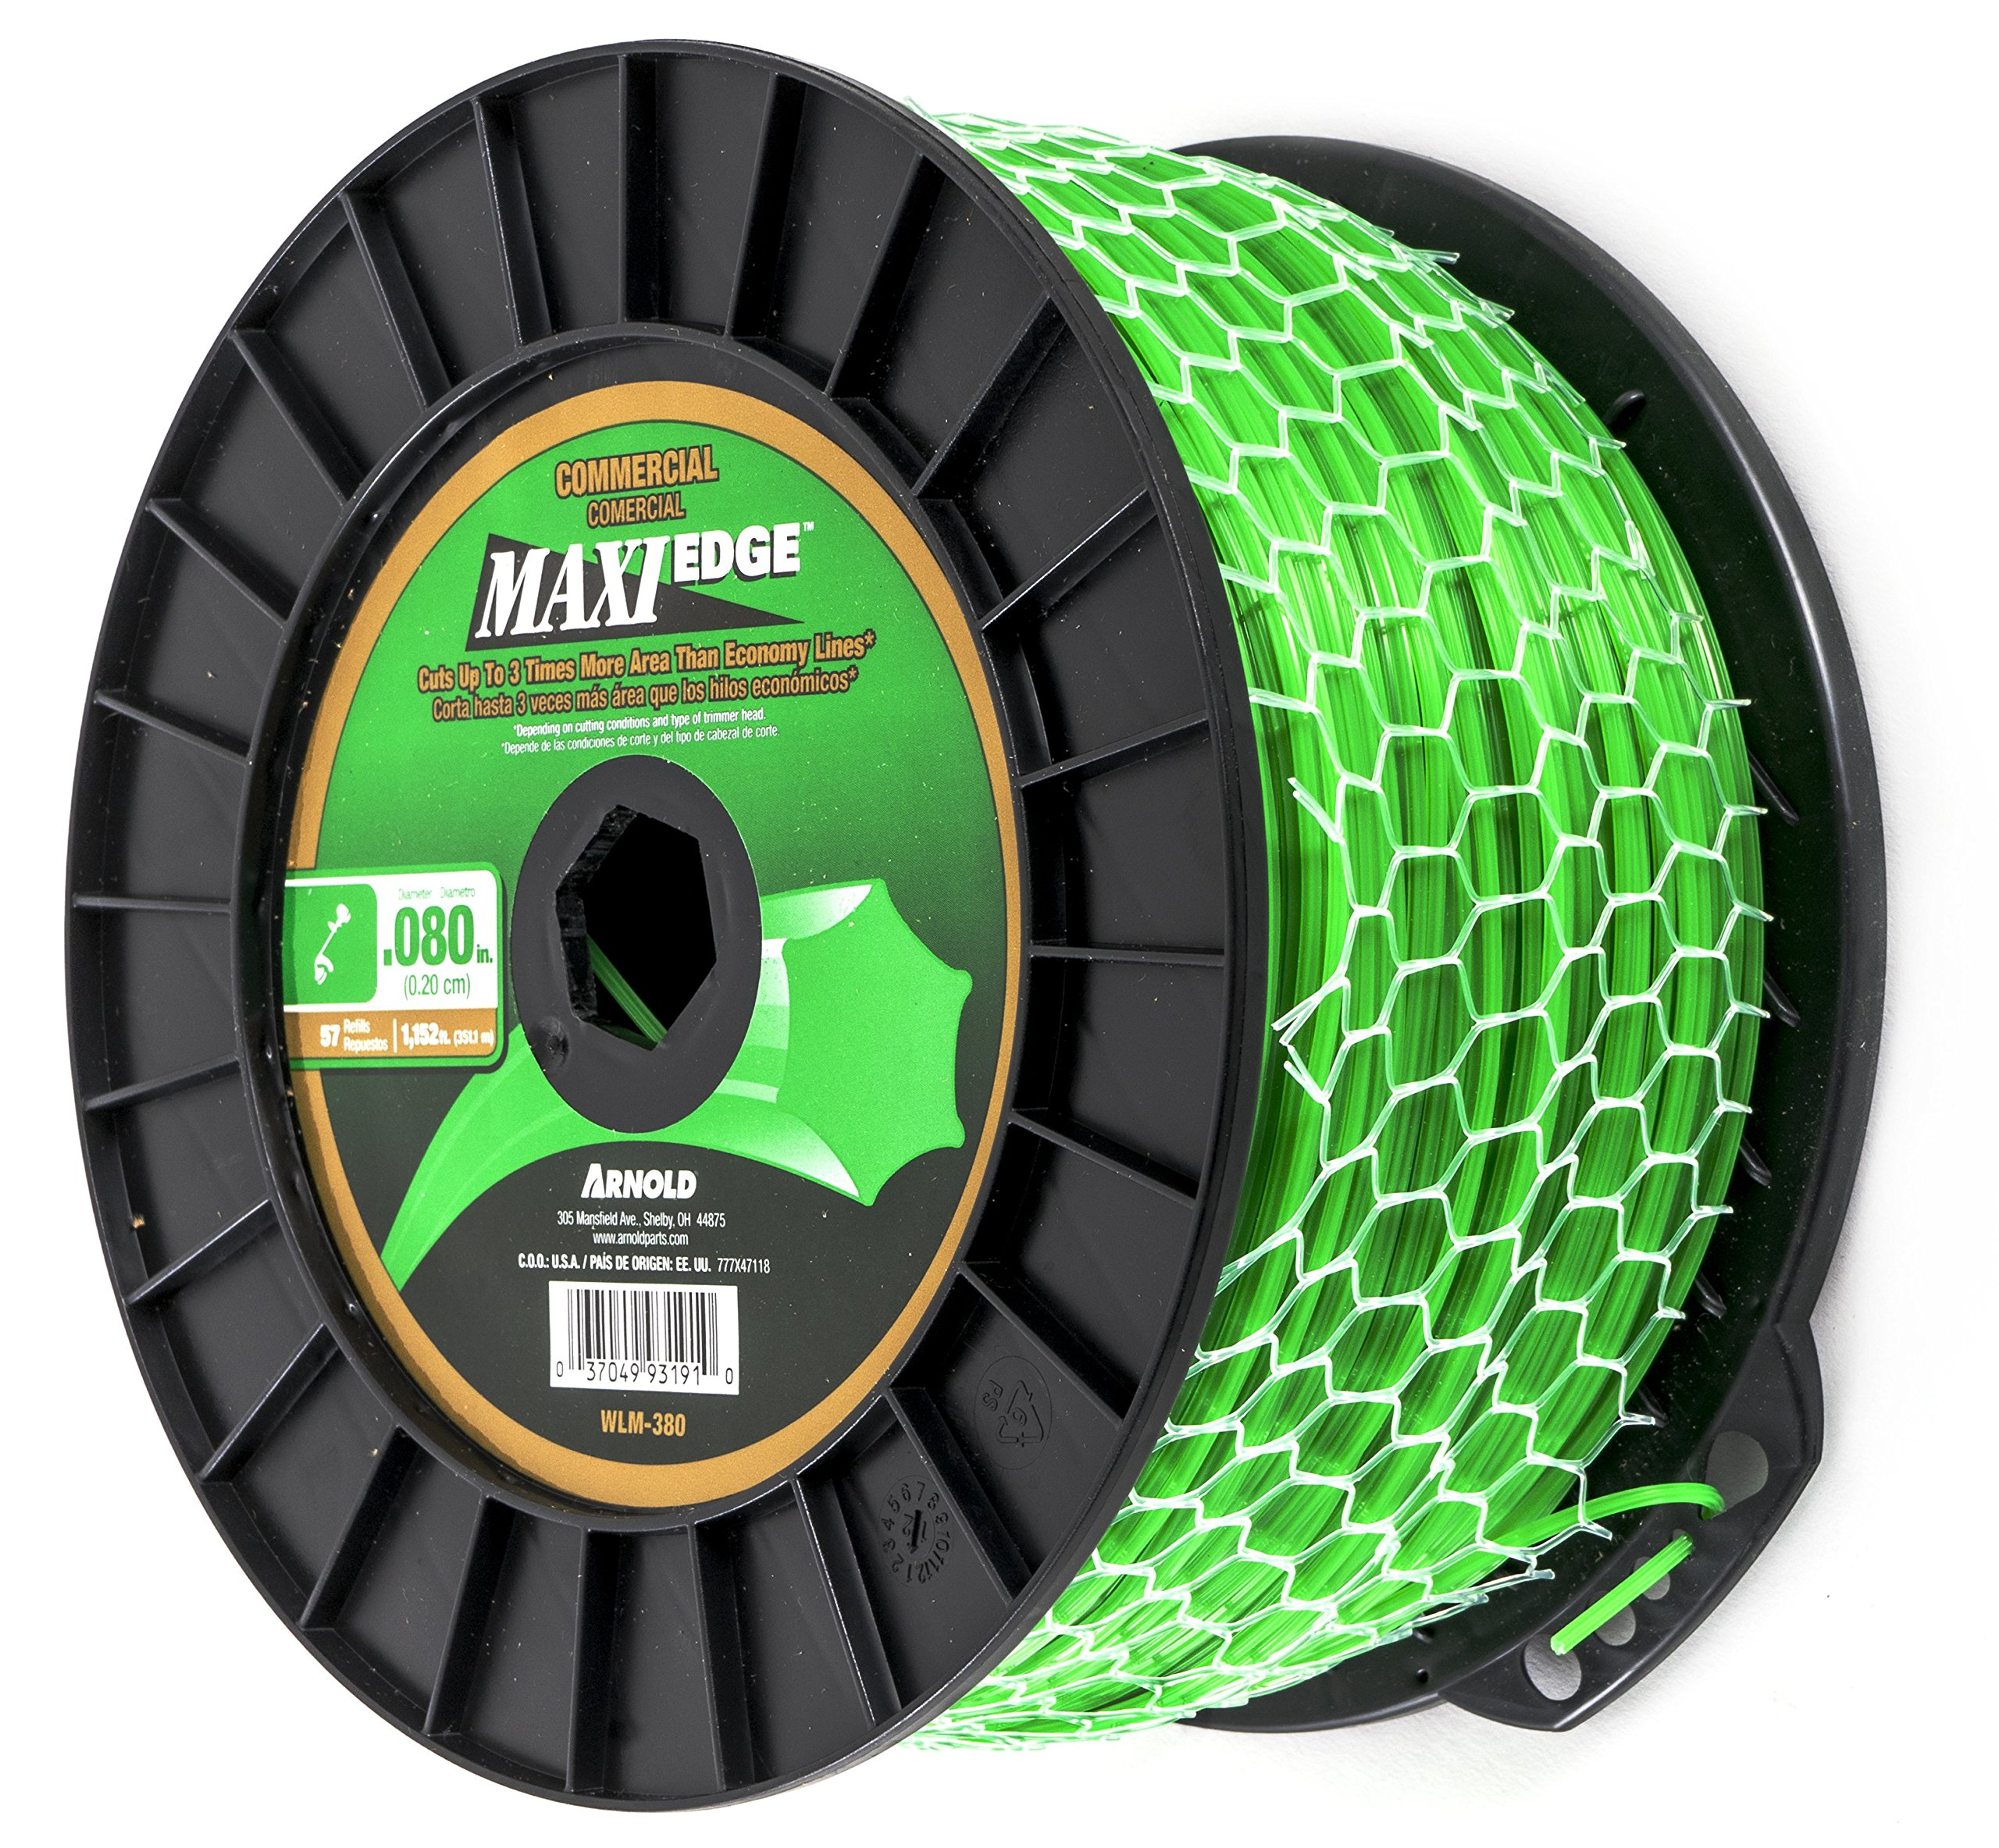 Arnold Maxi-Edge .080-Inch x 1,152-Foot Commercial Grade String Trimmer Line